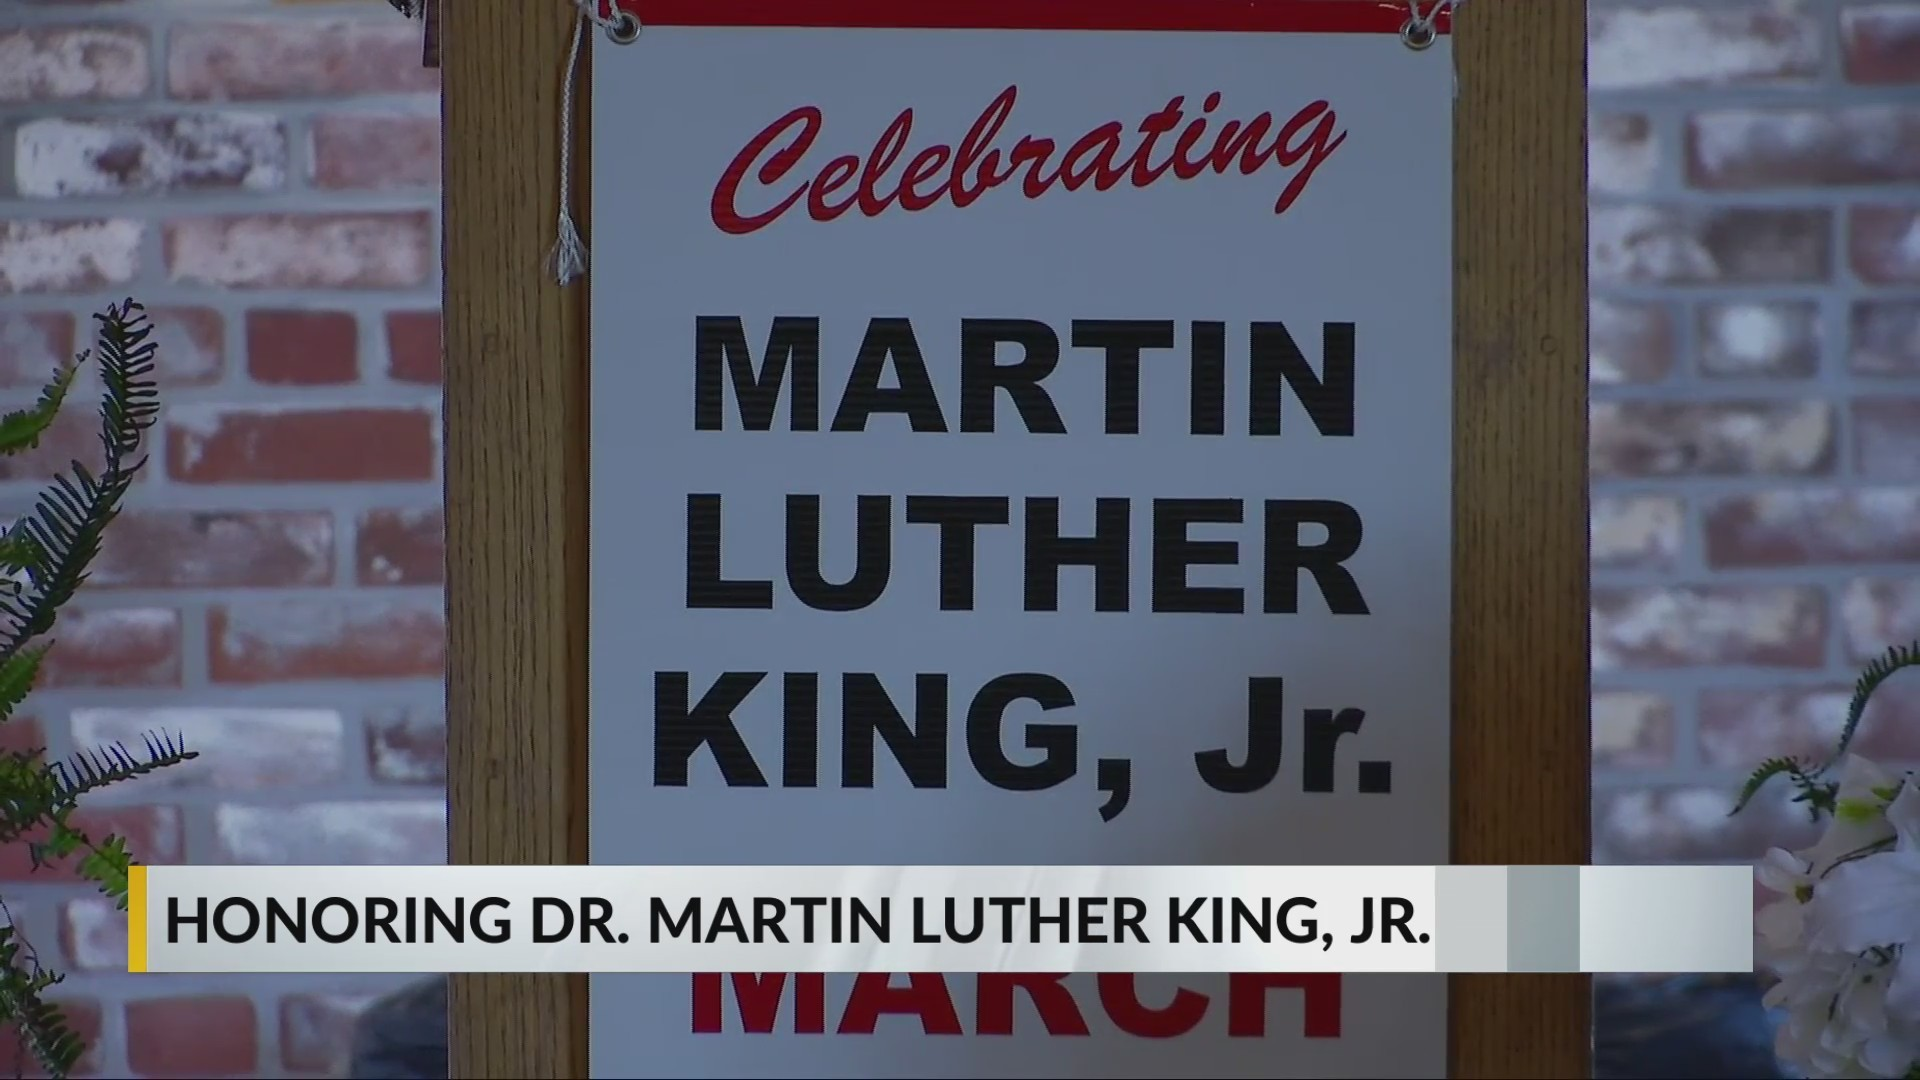 Community gathers to celebrate the life of Dr. Martin Luther King, Jr.